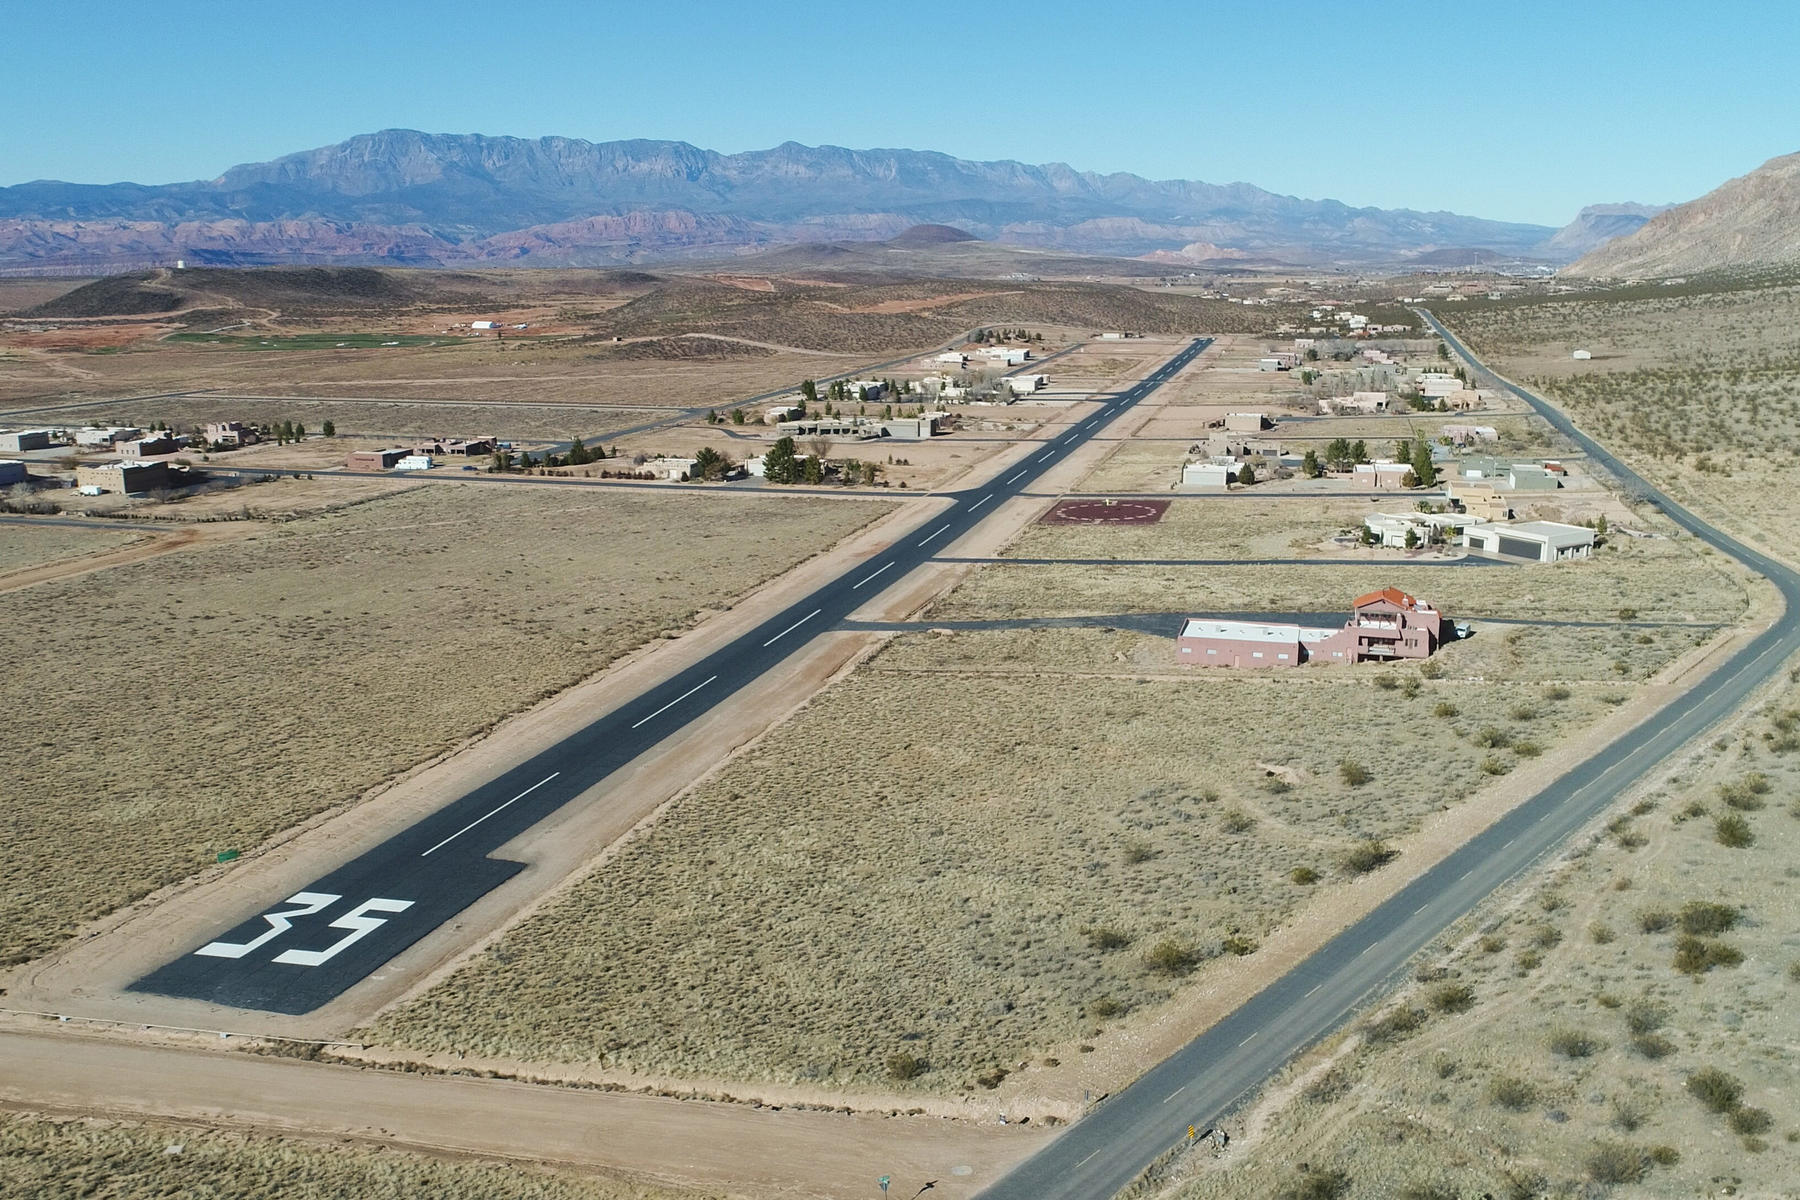 Land for Sale at Hanger Lots, Opportunity 1500 W Penny Lane Lot HU273, Hurricane, Utah 84737 United States